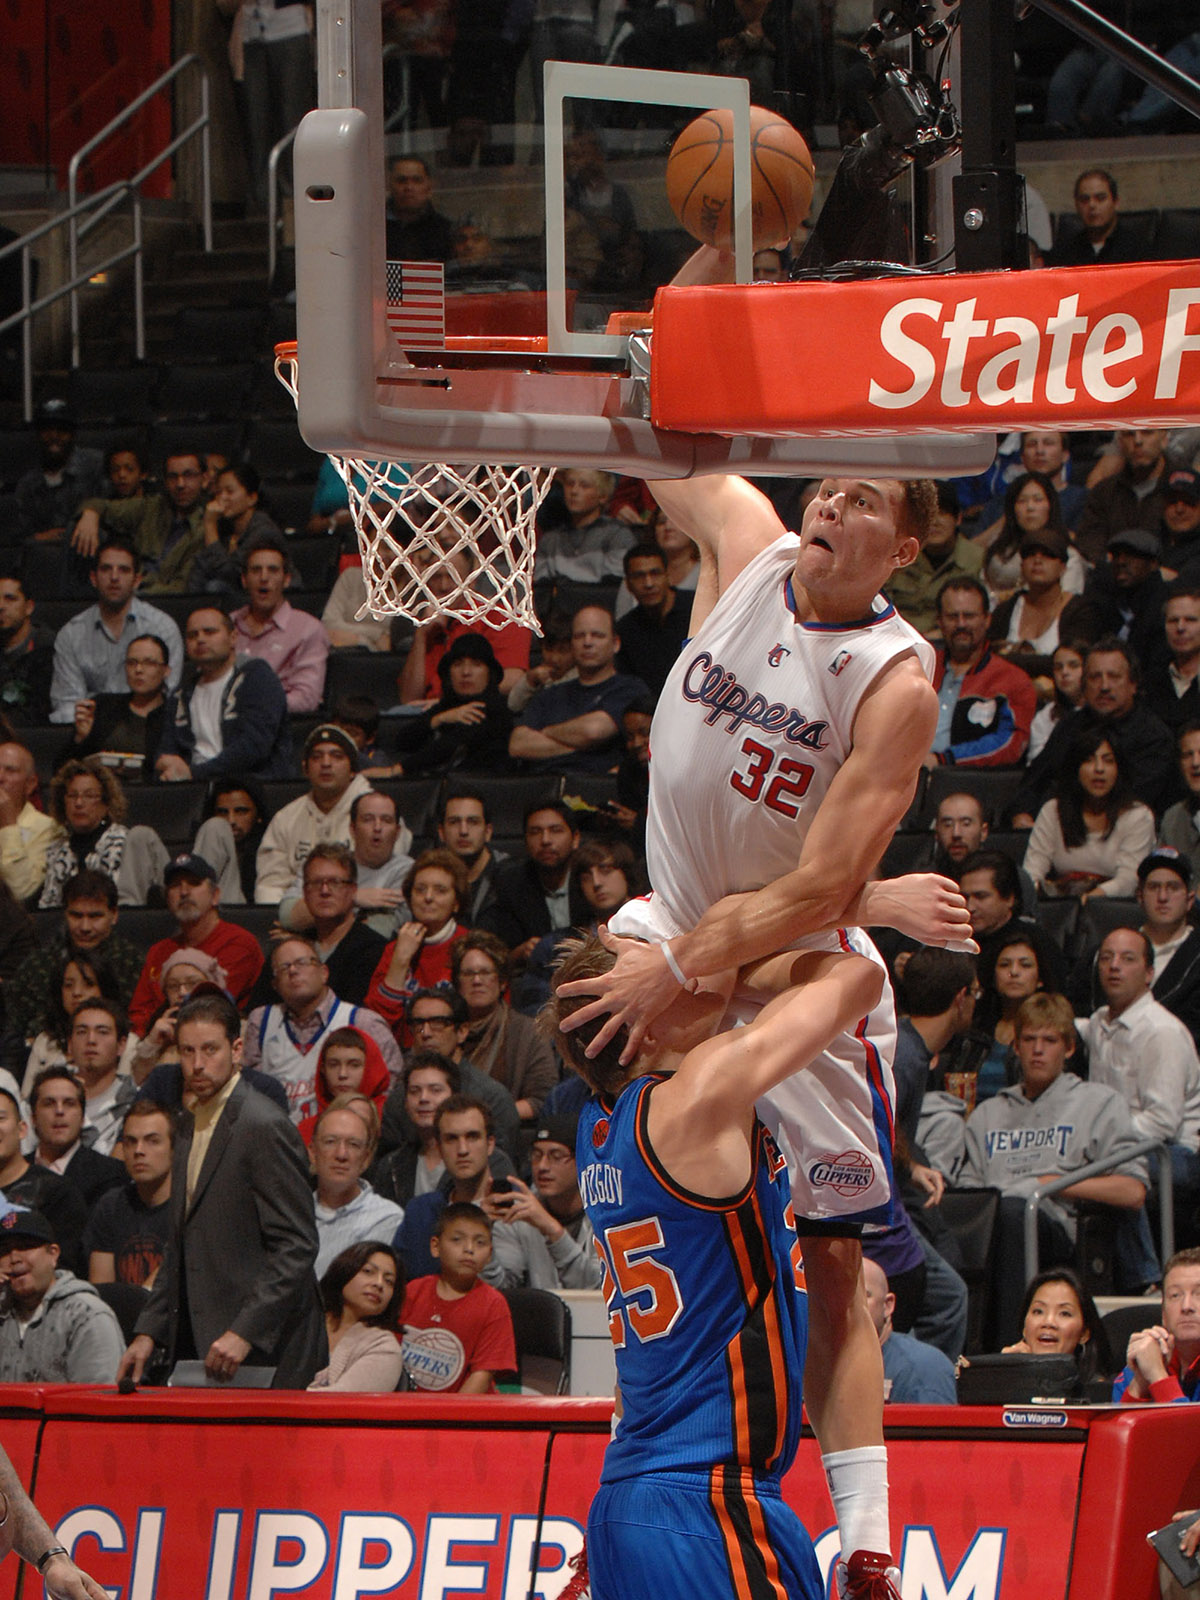 In one of the most famous dunks of his career, Blake Griffin pulverizes Timofey Mozgov on the block.